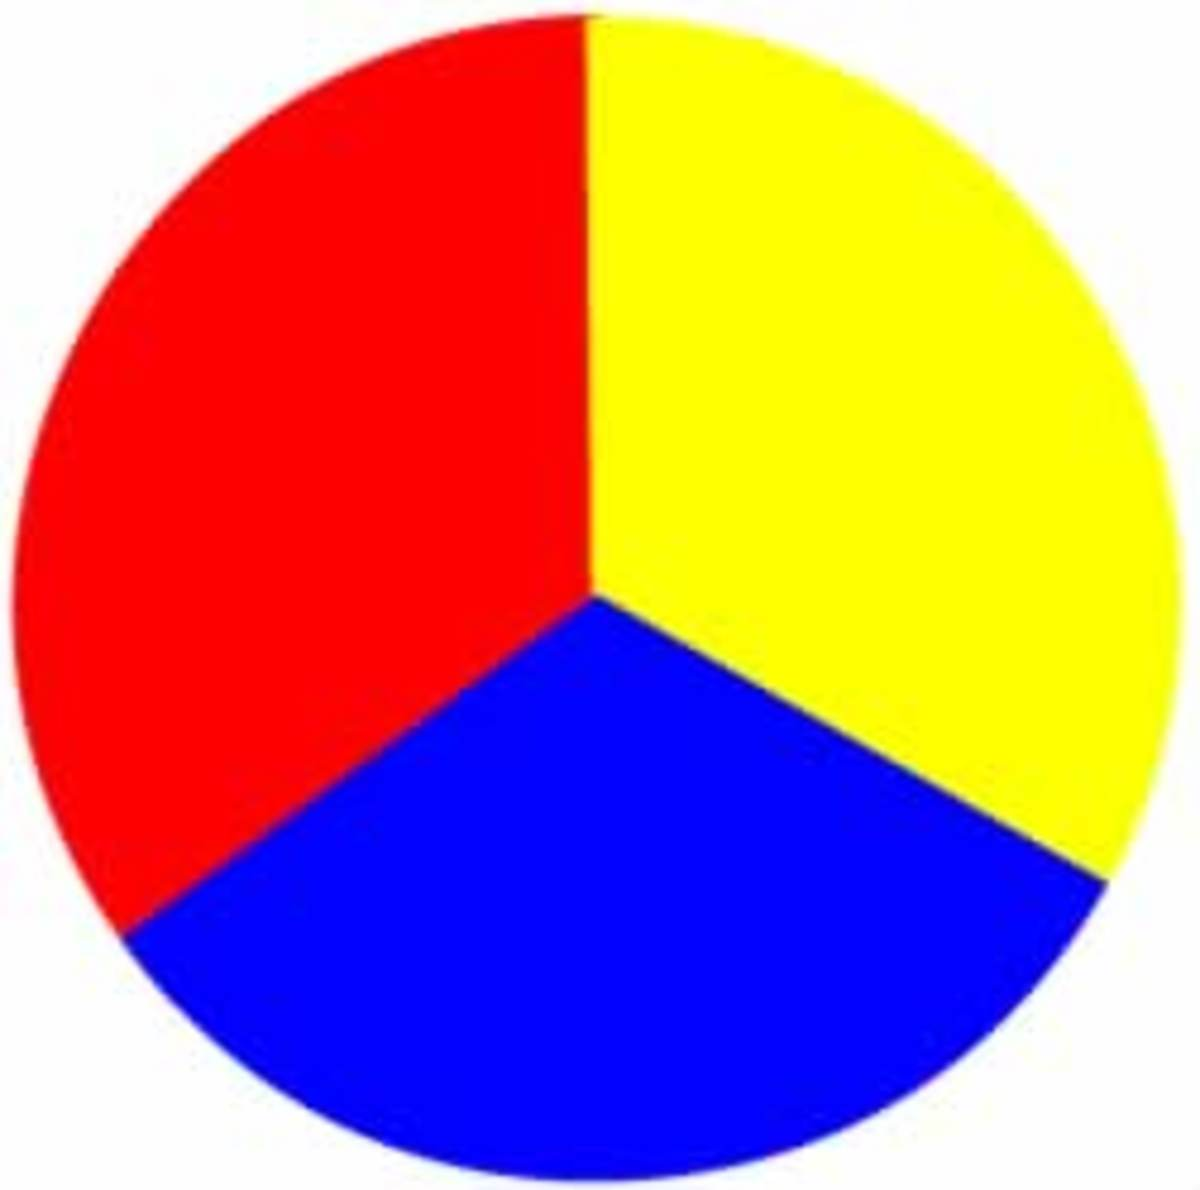 The primary colours, colour wheel.